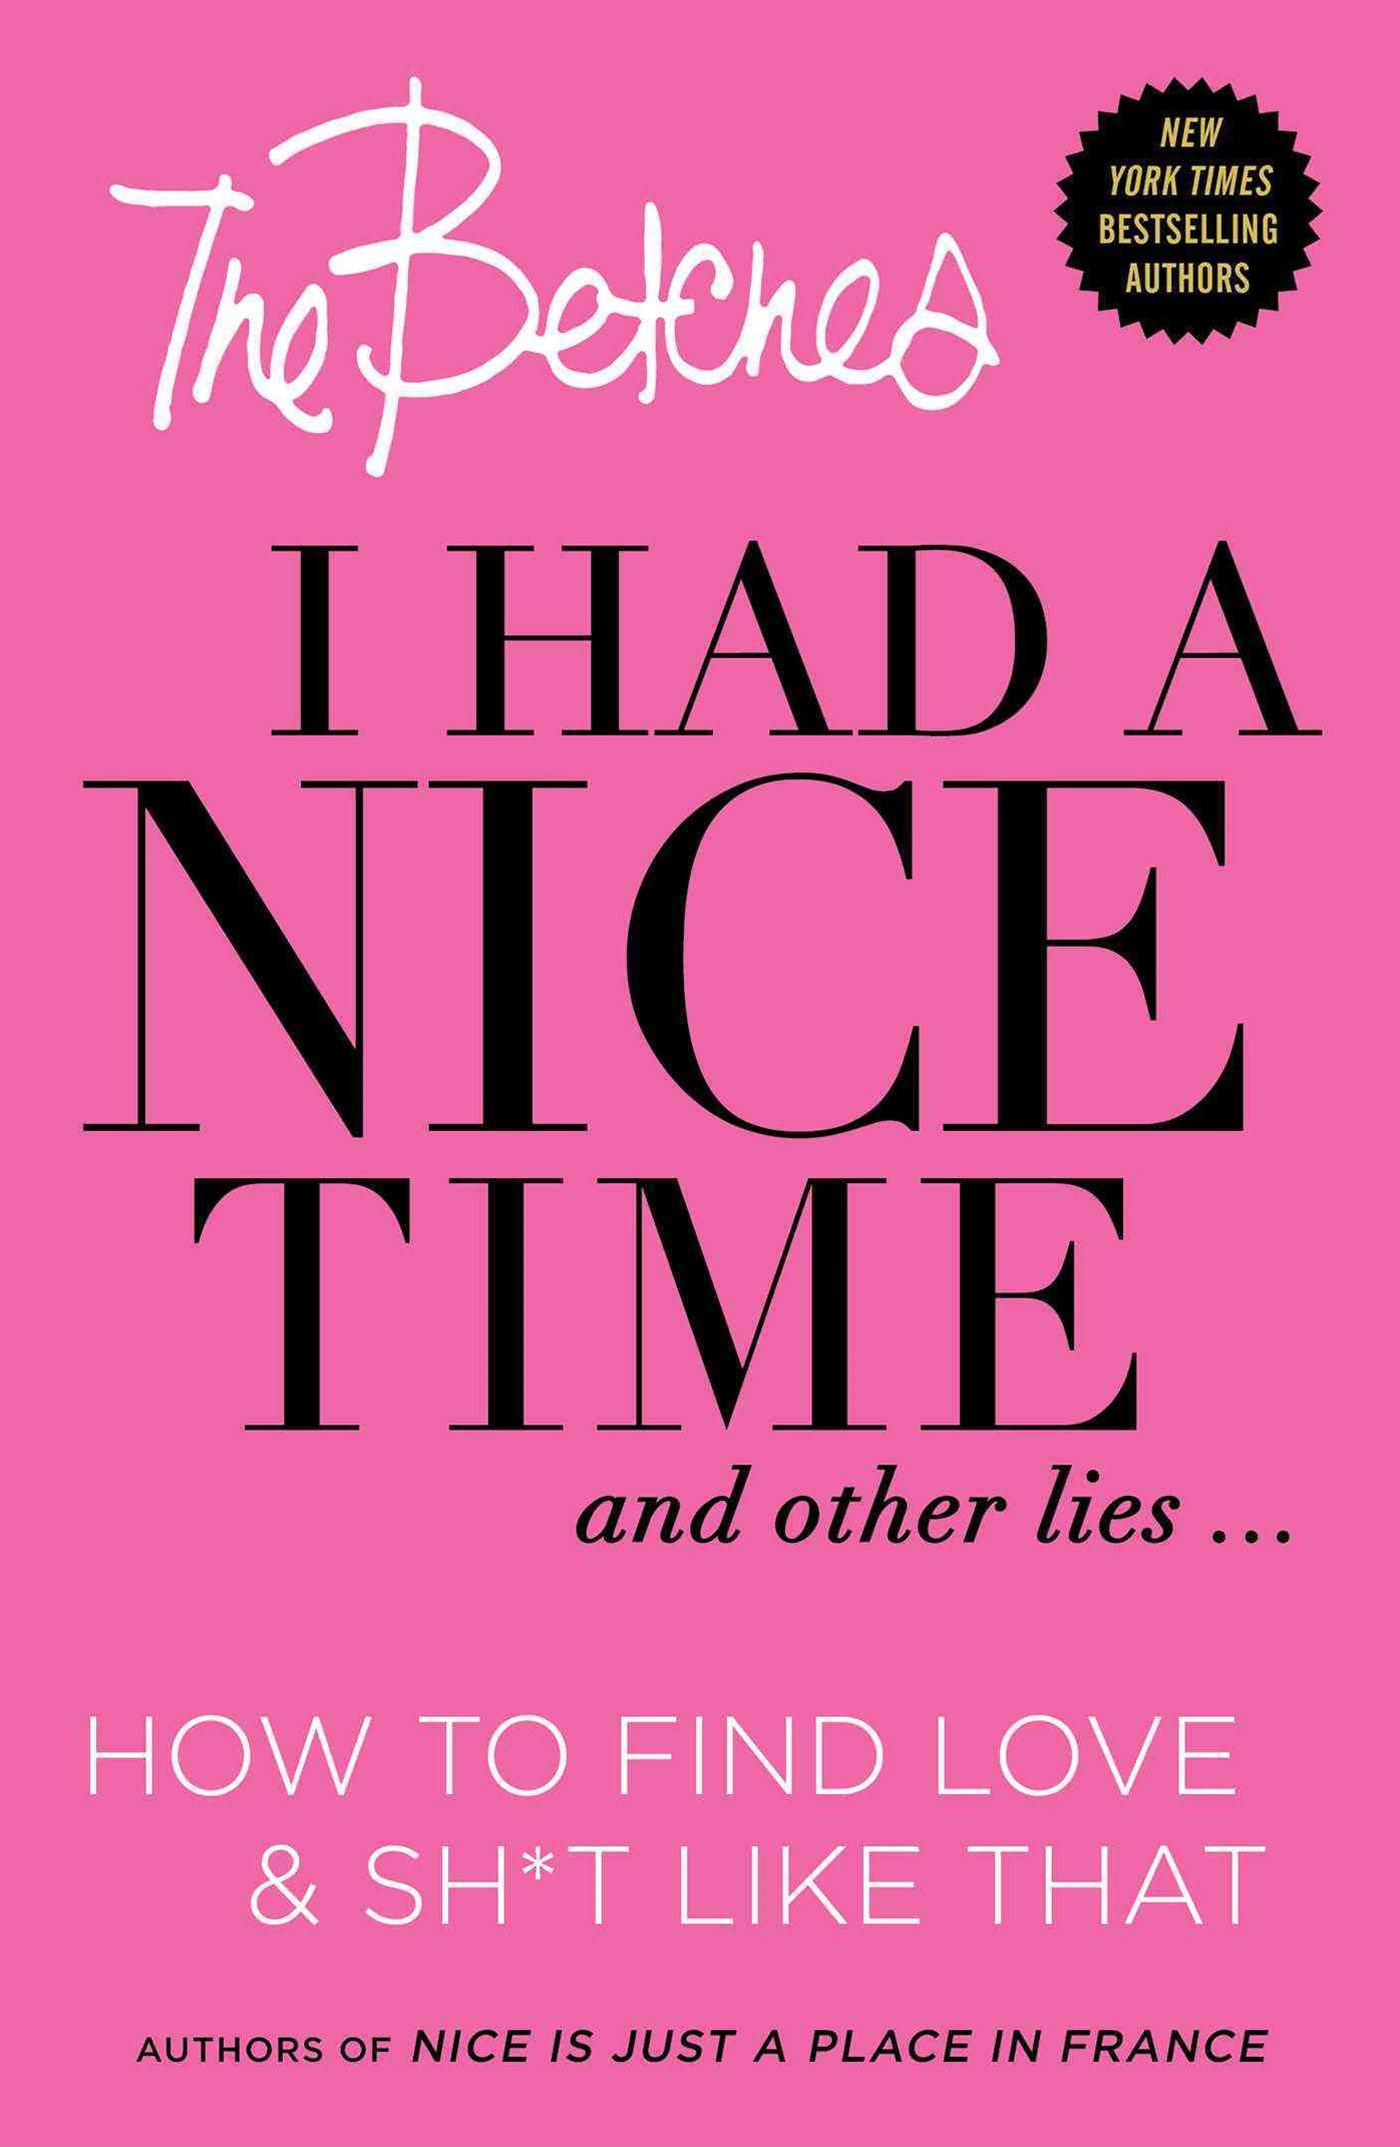 I Had a Nice Time And Other Lies...: How to find love & shit like that